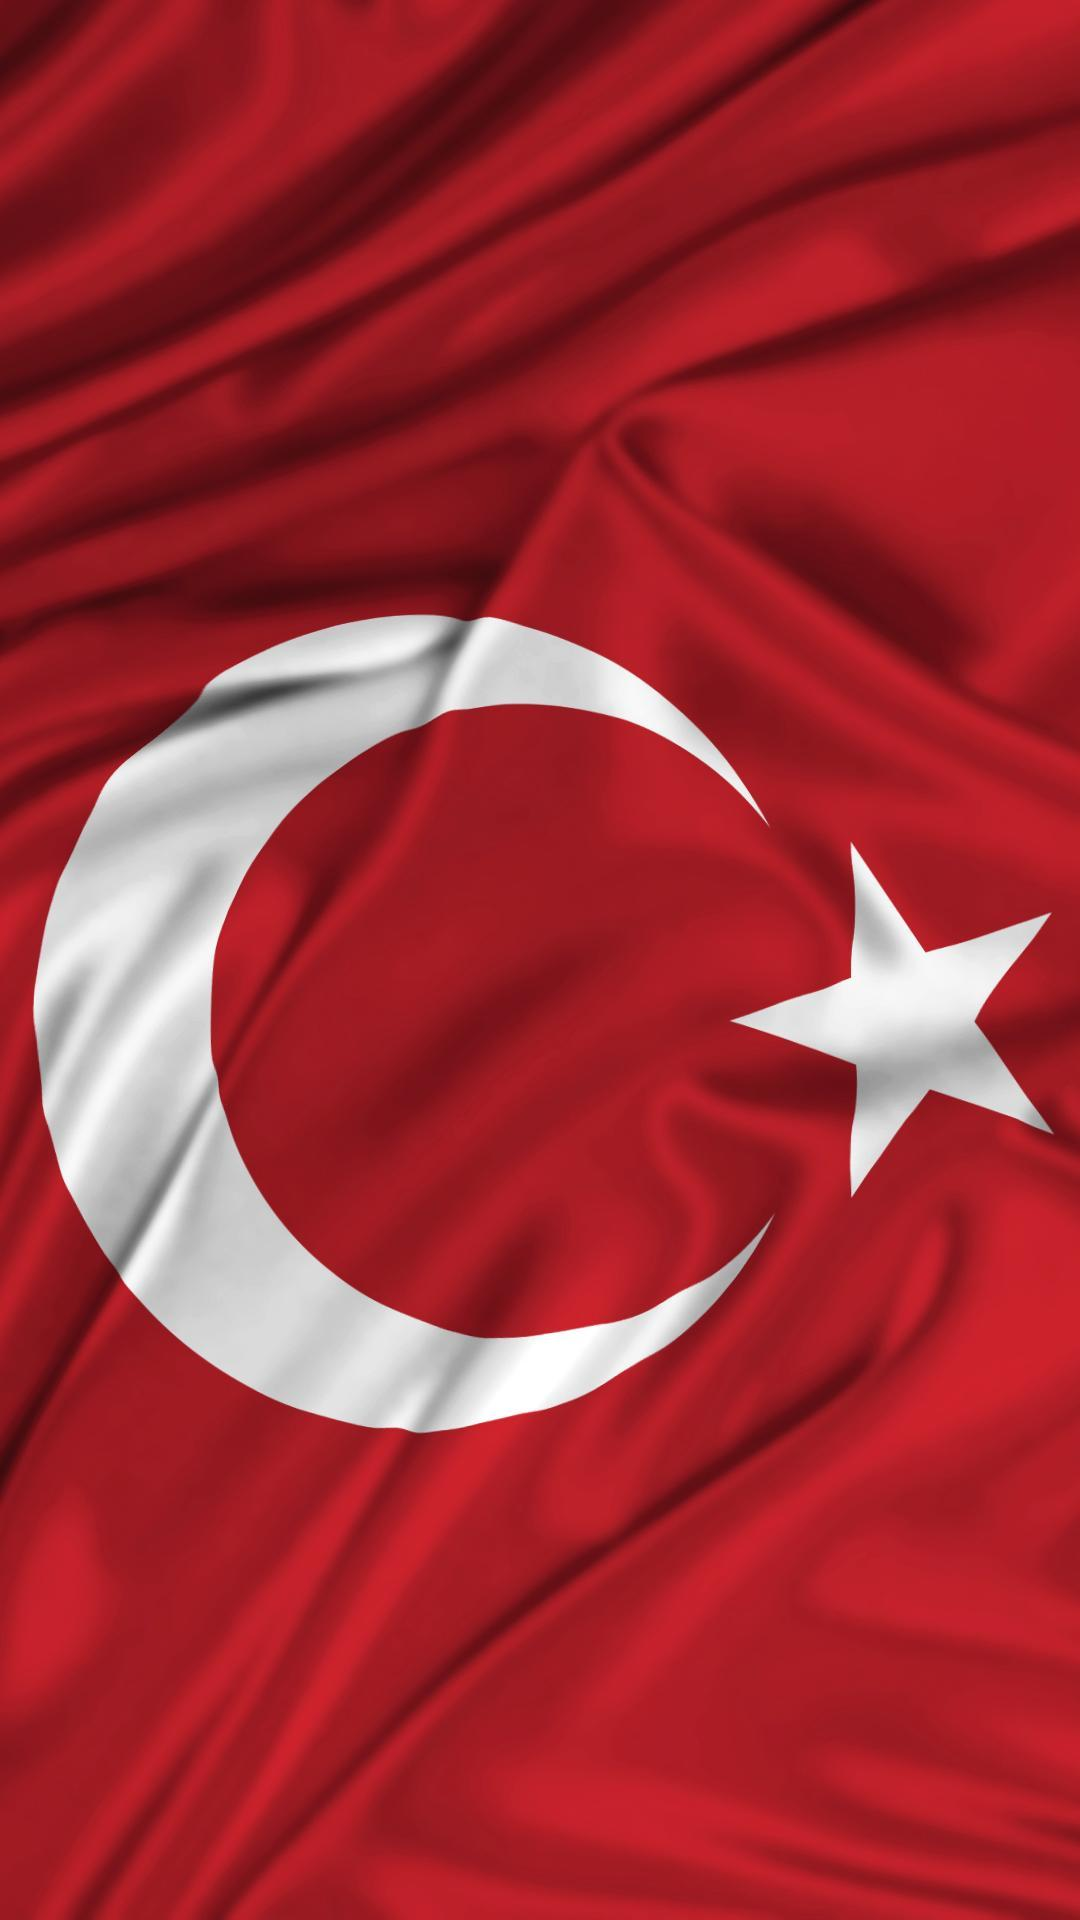 Hd Turk Wallpaper For Android Apk Download